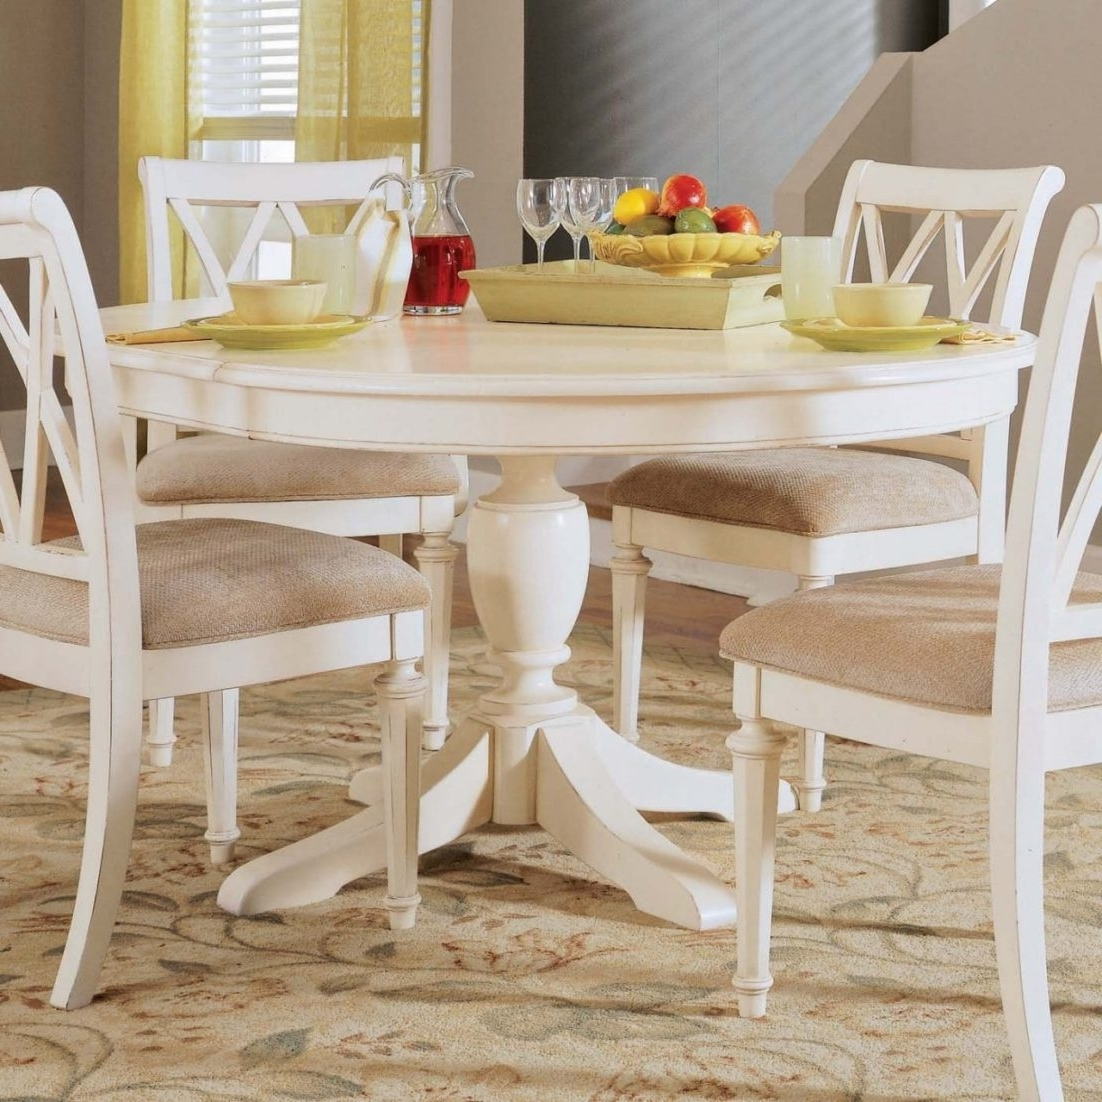 Small Round White Dining Tables With Current Dining Room Round White Table And Chairs Grey Small Kitchen Sets (View 8 of 25)